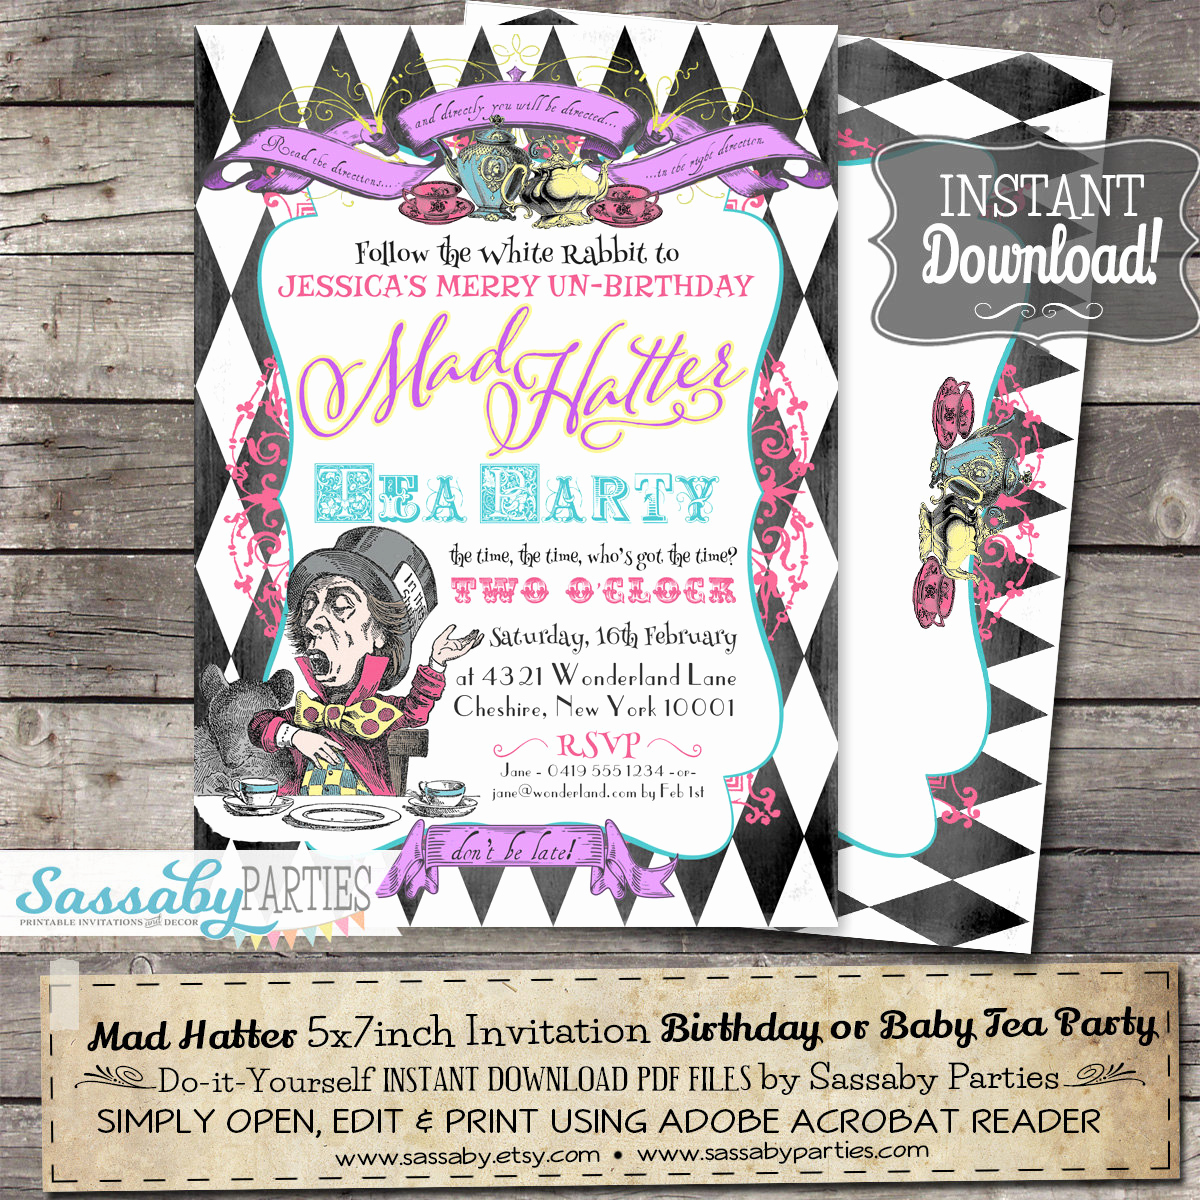 Mad Hatters Tea Party Invitation Unique Mad Hatter Tea Party Invitation Instant Download